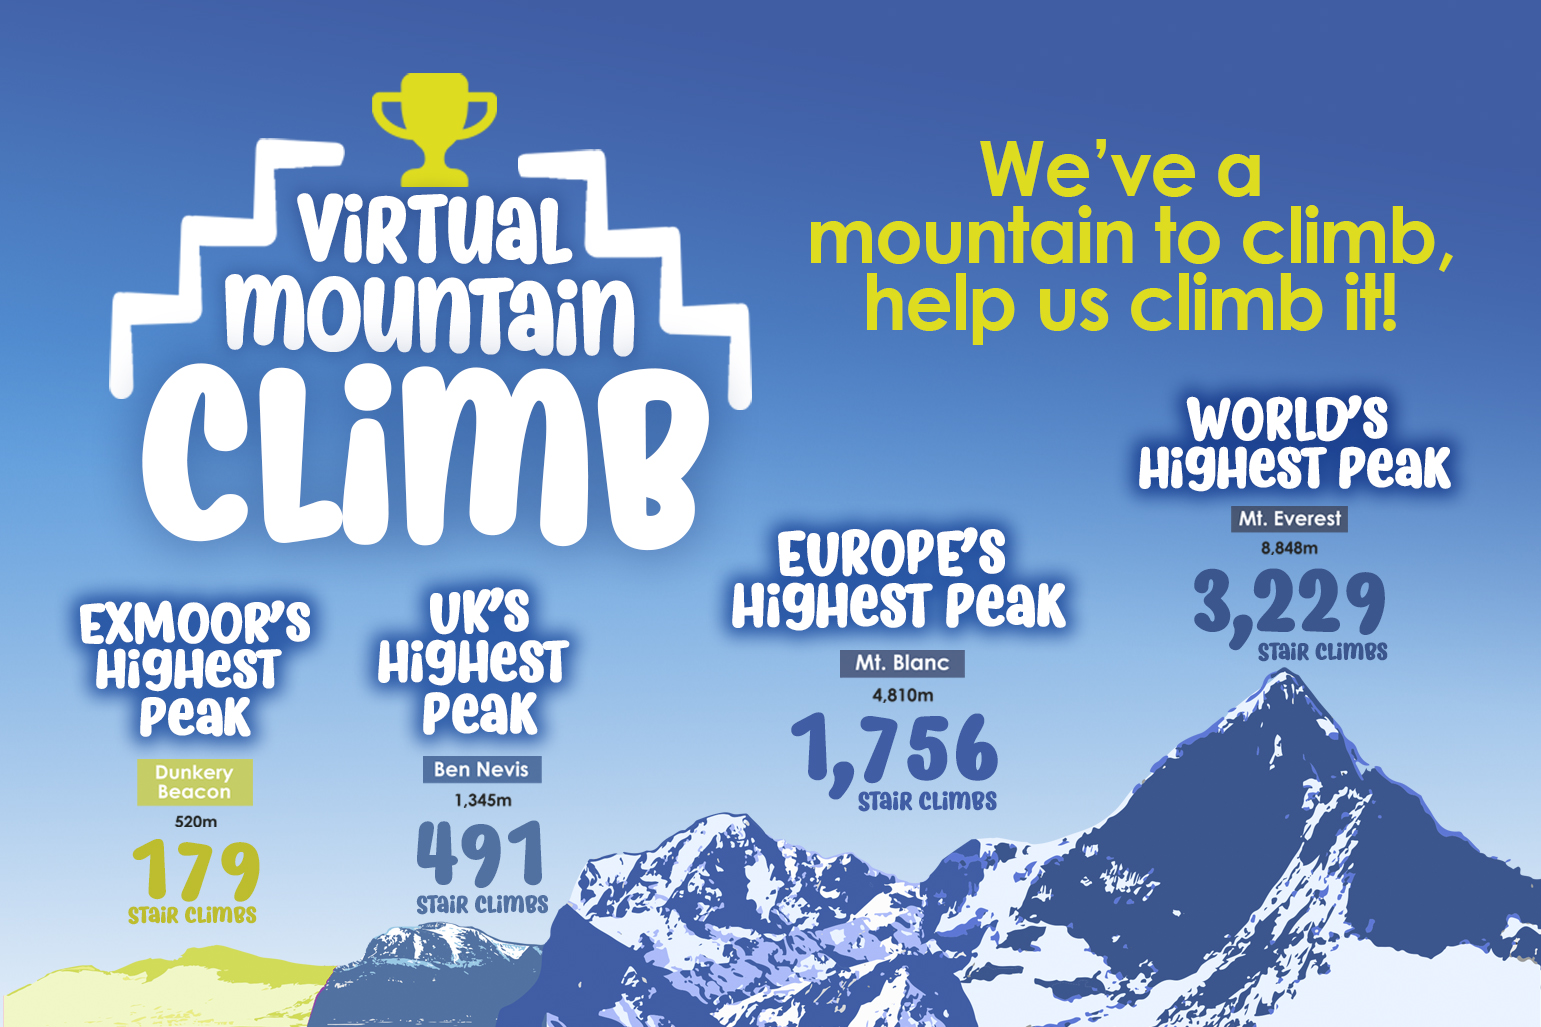 Mountain Climb thank you for signing up